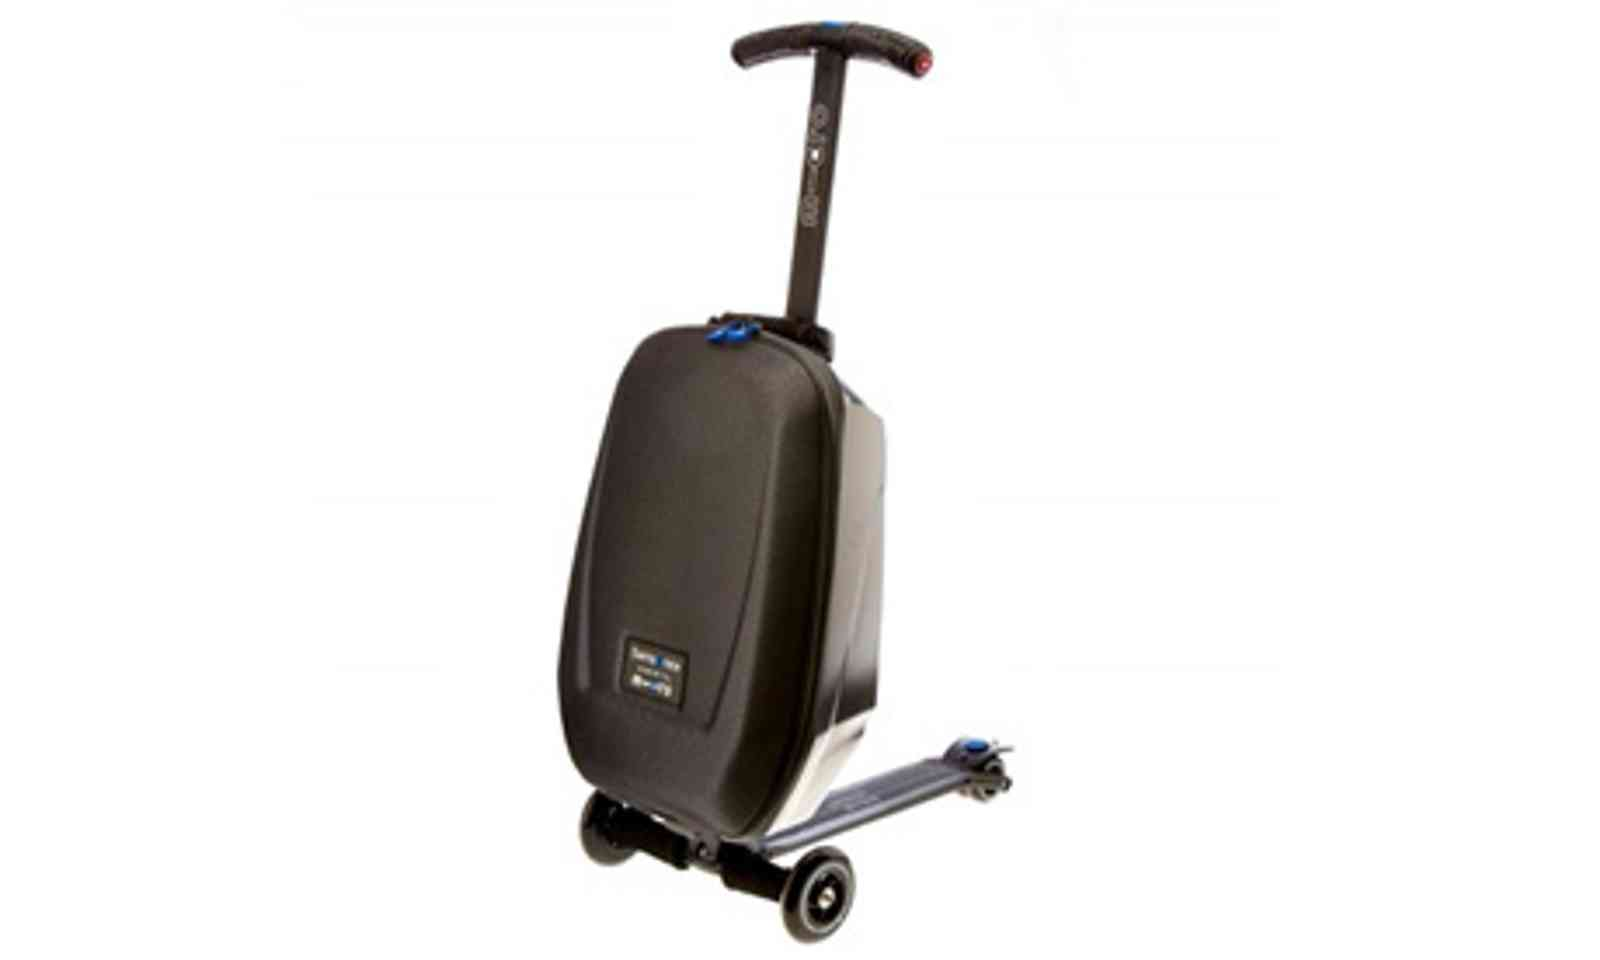 Scooter luggage